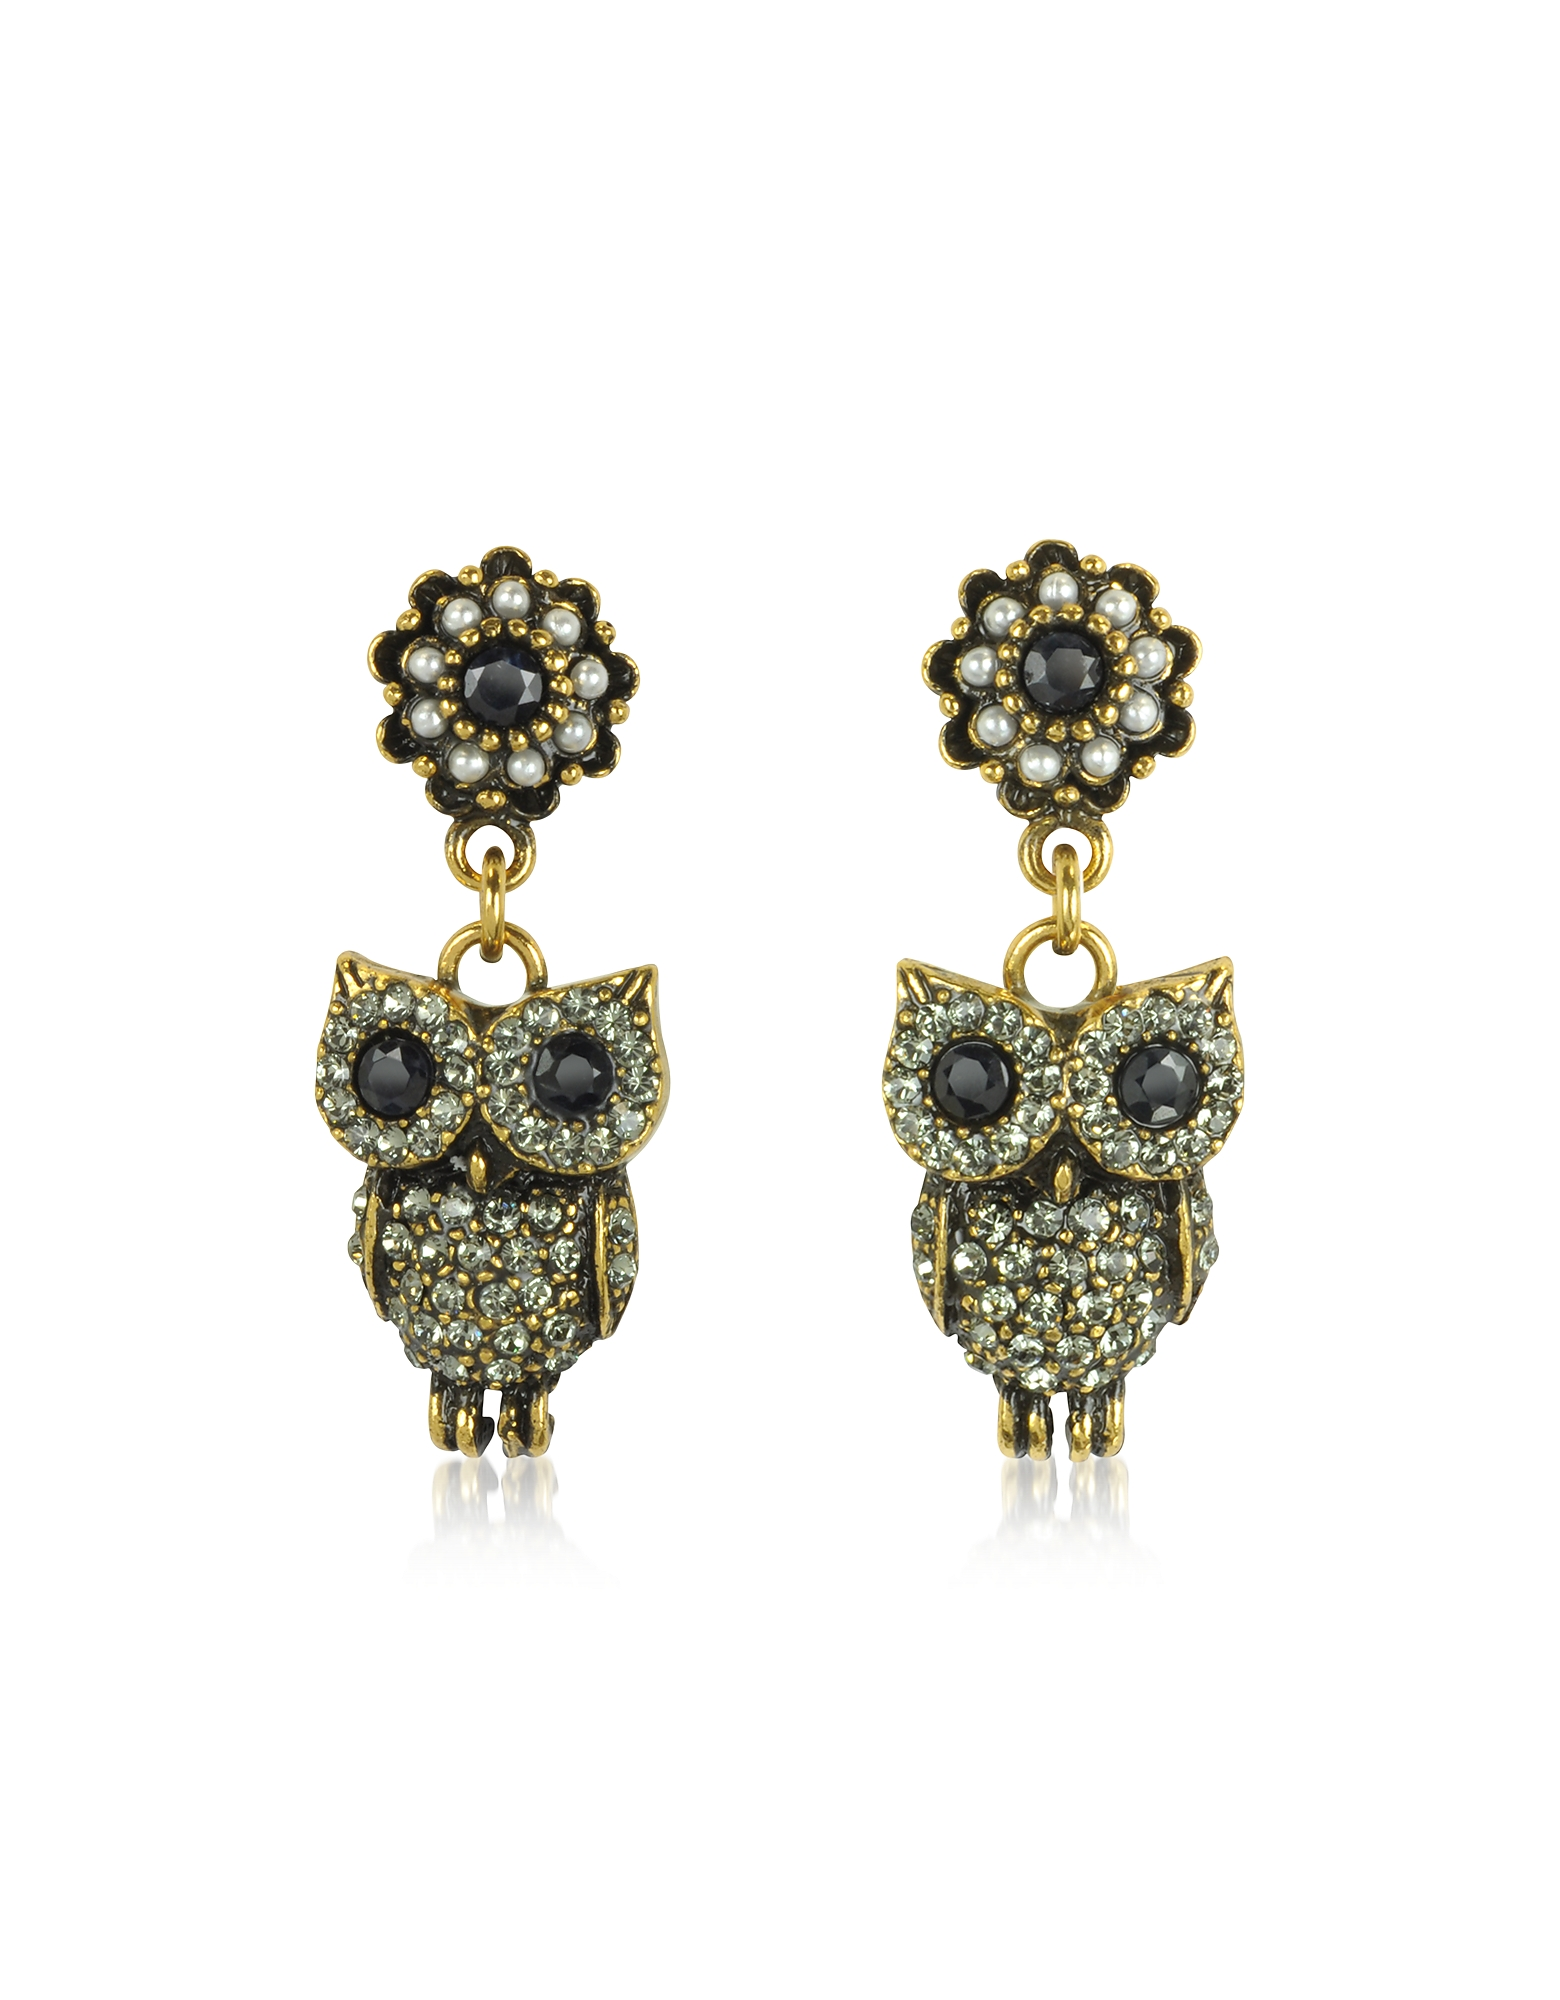 Forzieri coupon: Alcozer & J  Earrings Hanging Goldtone Brass w/Crystals Drop Earrings